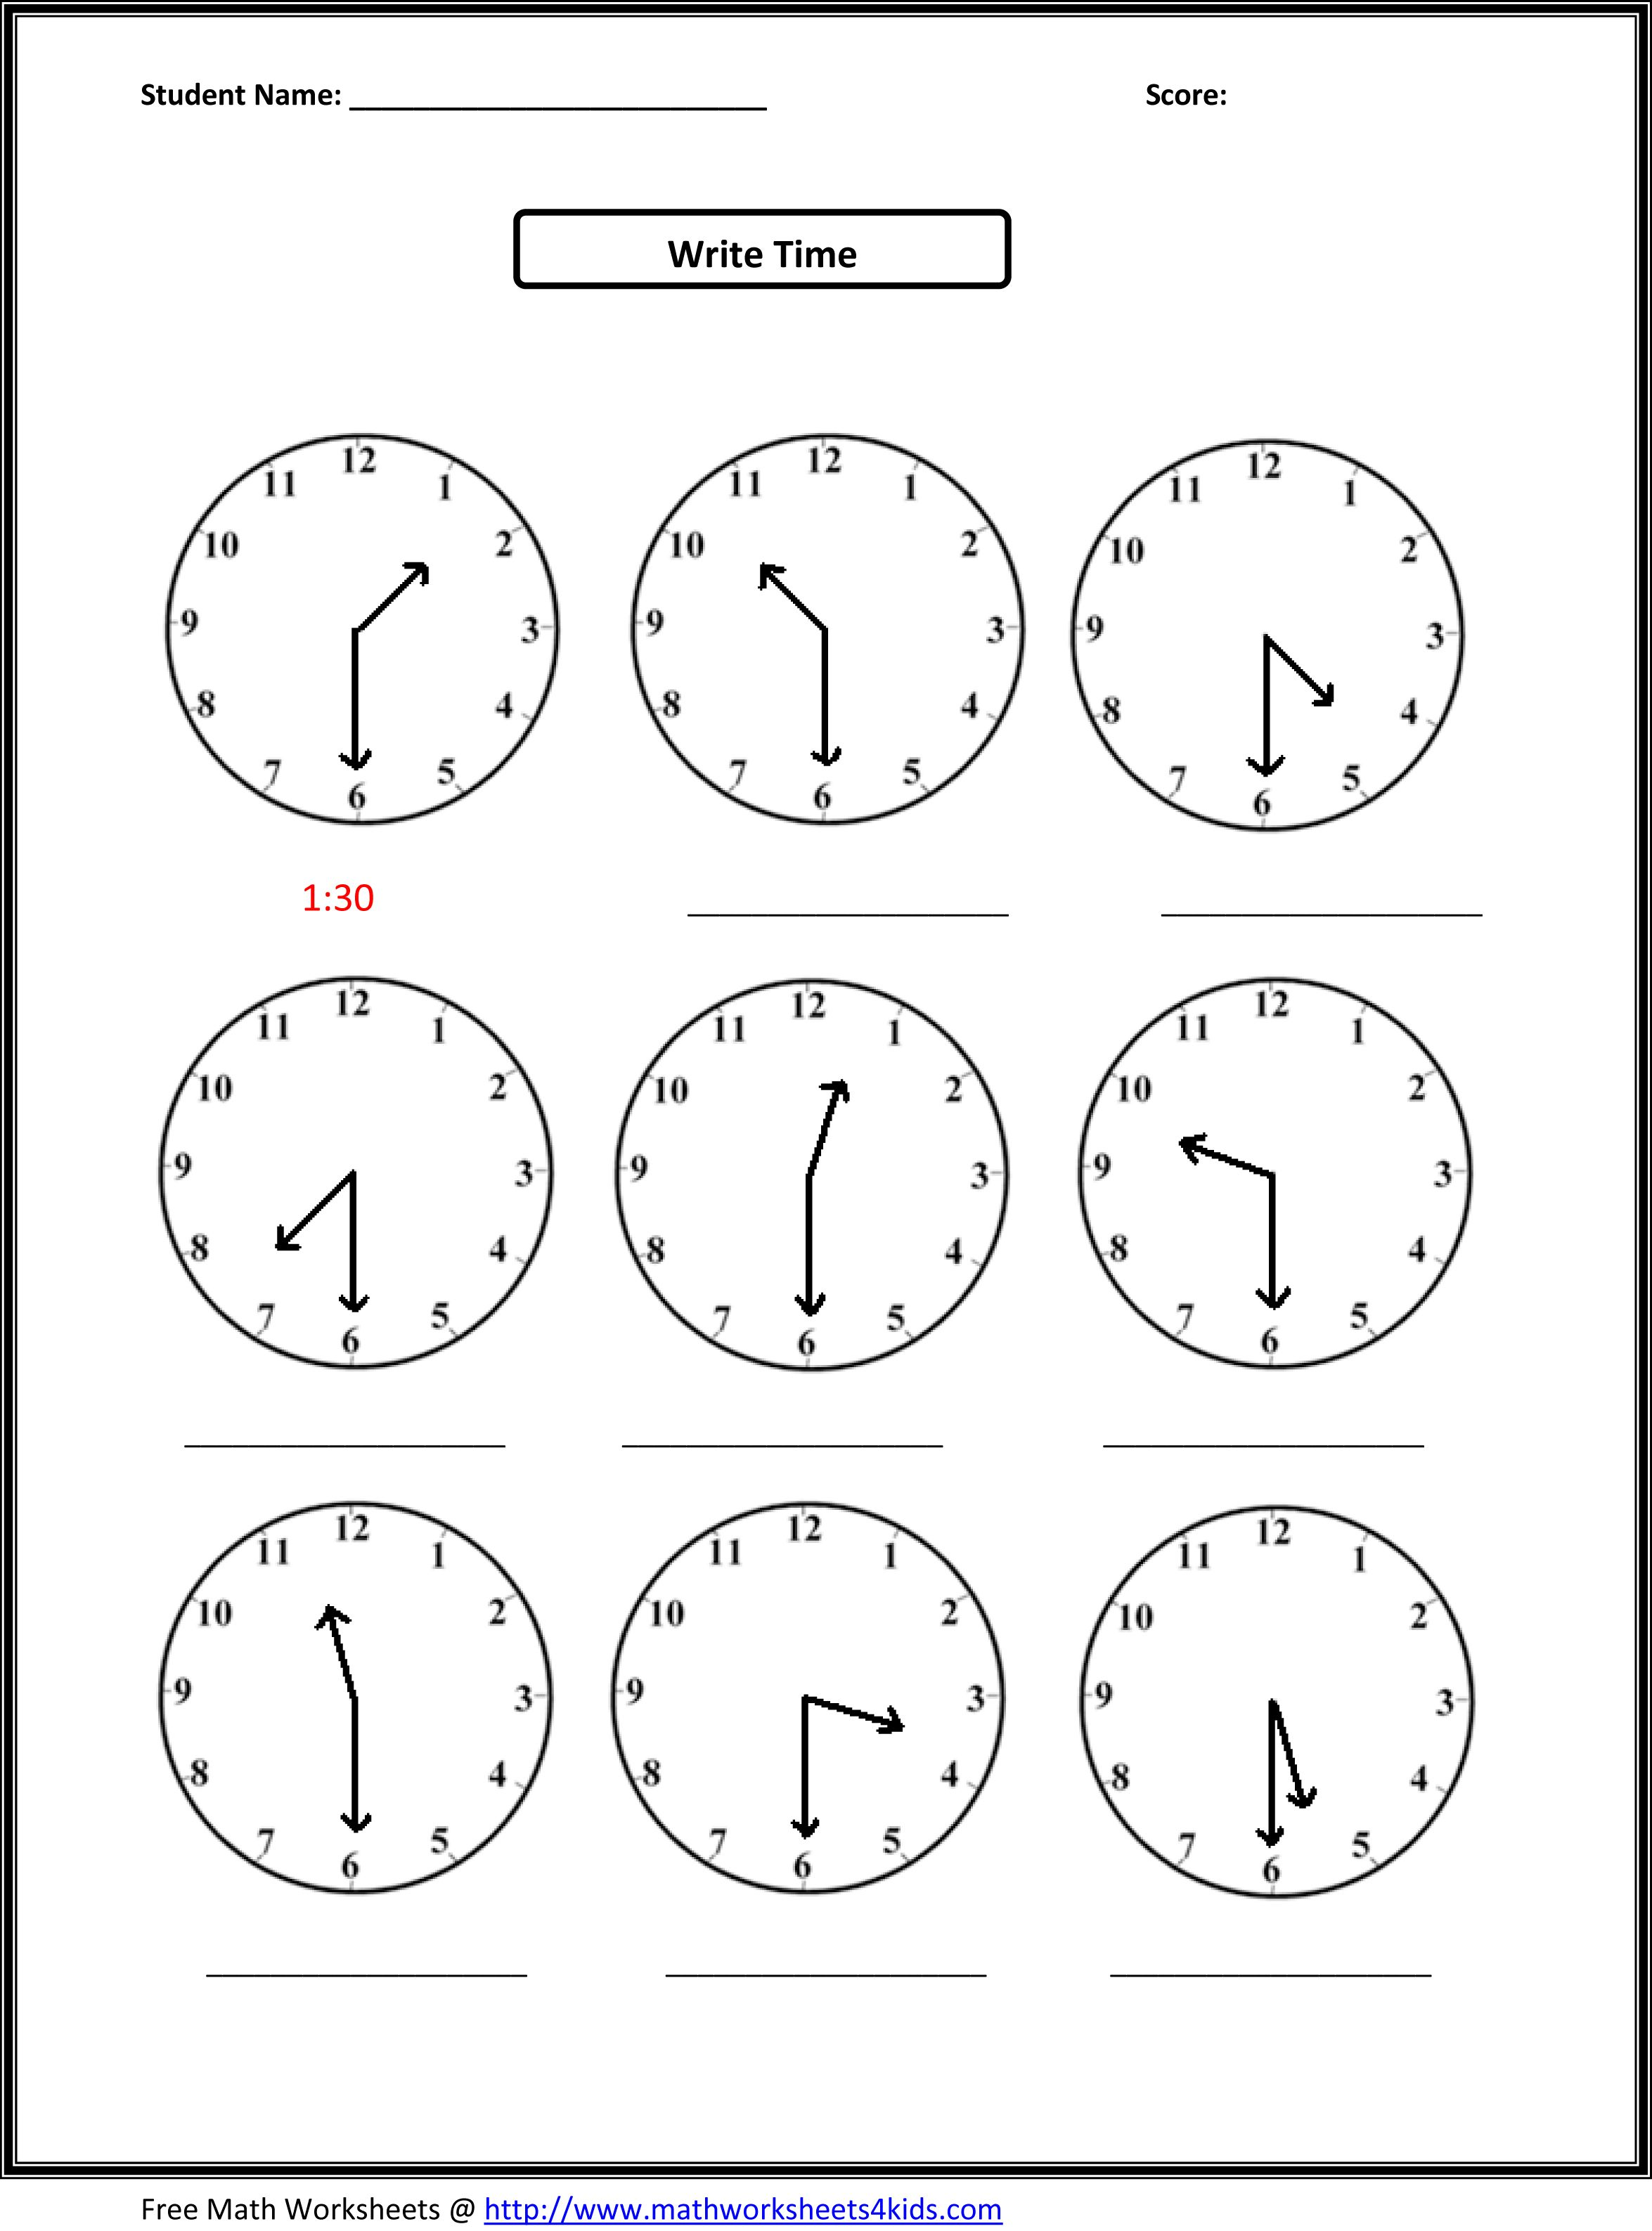 Weirdmailus  Pleasant Worksheet On Time For Grade   Reocurent With Luxury Free Printable Telling Time Worksheets Nd Grade  Reocurent With Beauteous Directions In Spanish Worksheet Also Worksheet Circulatory System In Addition Chinese New Year Worksheets For Kids And Bill Nye Rocks Worksheet As Well As Sequencing Words Worksheets Additionally Phonic Worksheets Phase  From Reocurentcom With Weirdmailus  Luxury Worksheet On Time For Grade   Reocurent With Beauteous Free Printable Telling Time Worksheets Nd Grade  Reocurent And Pleasant Directions In Spanish Worksheet Also Worksheet Circulatory System In Addition Chinese New Year Worksheets For Kids From Reocurentcom